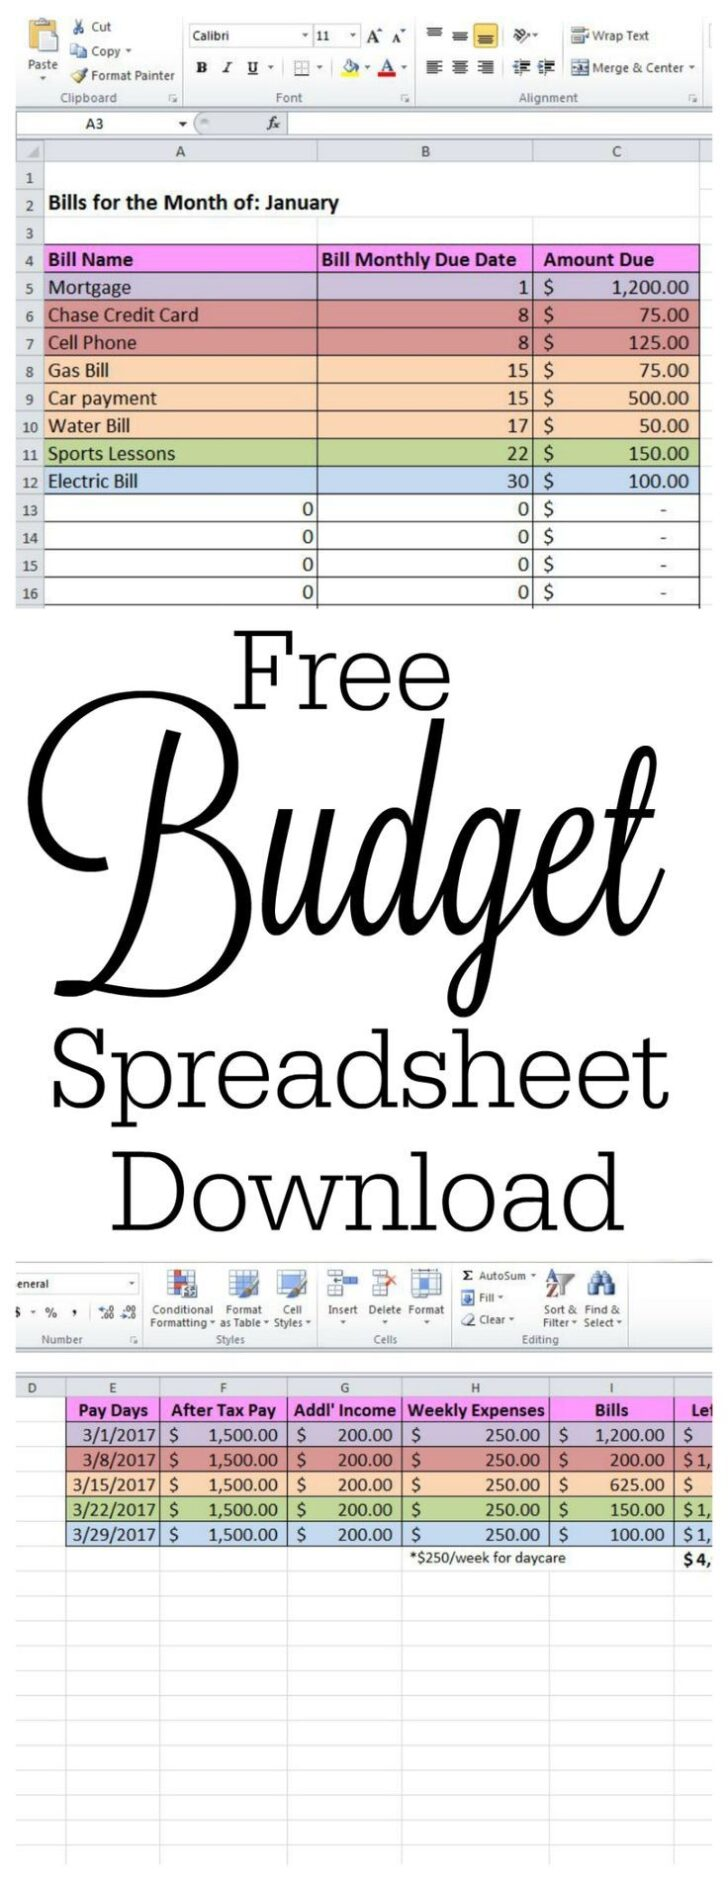 Medium Size of Free Spreadsheet For Windows Cleaning Business Templates Budget Planner Worksheet Bill Download 8